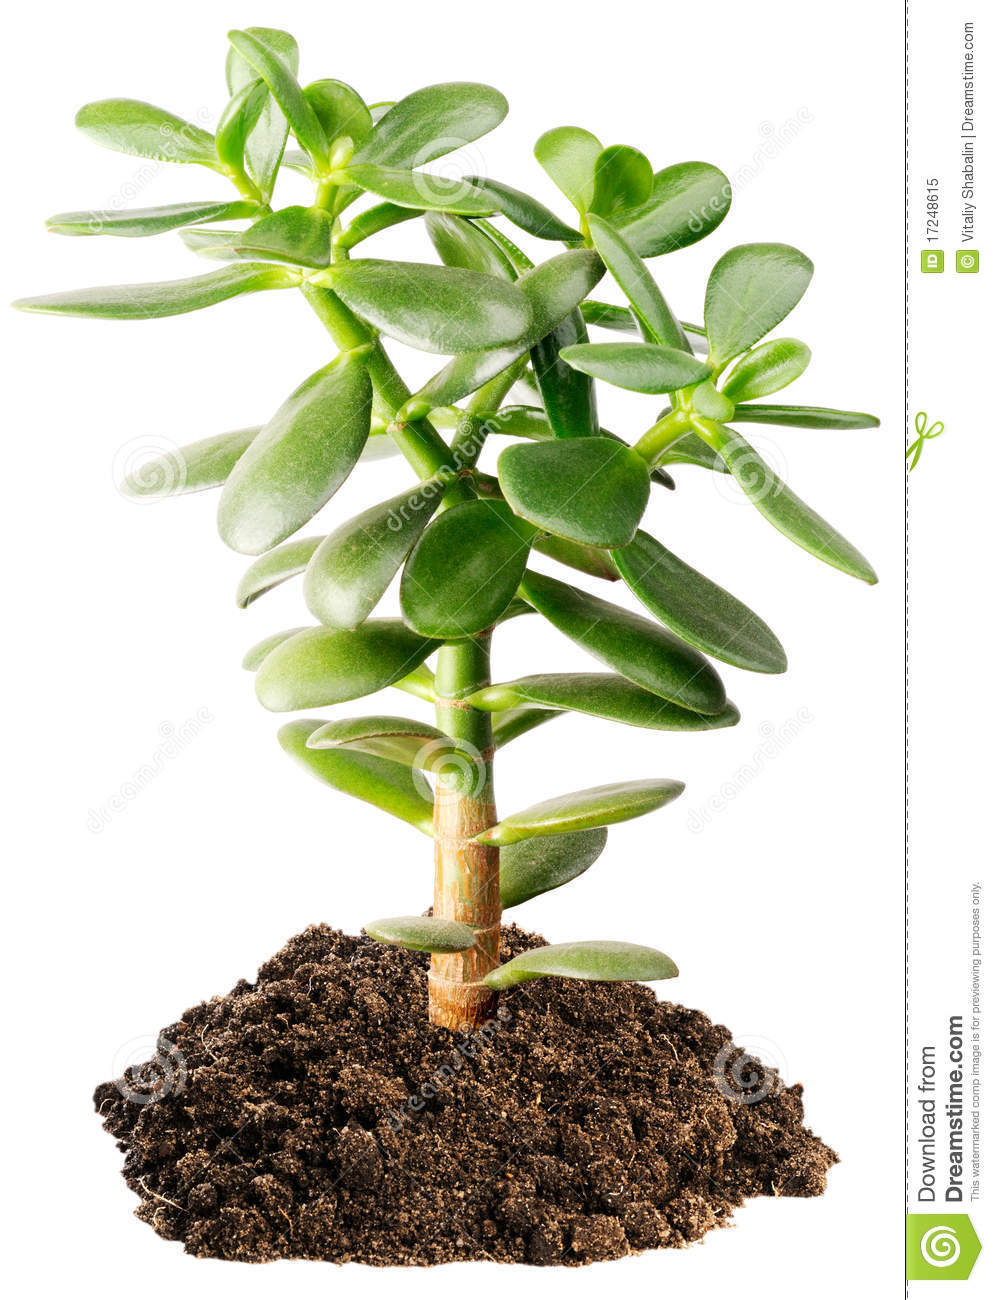 Indoor Succulent Plant Royalty Free Stock Photo - Image: 17248615